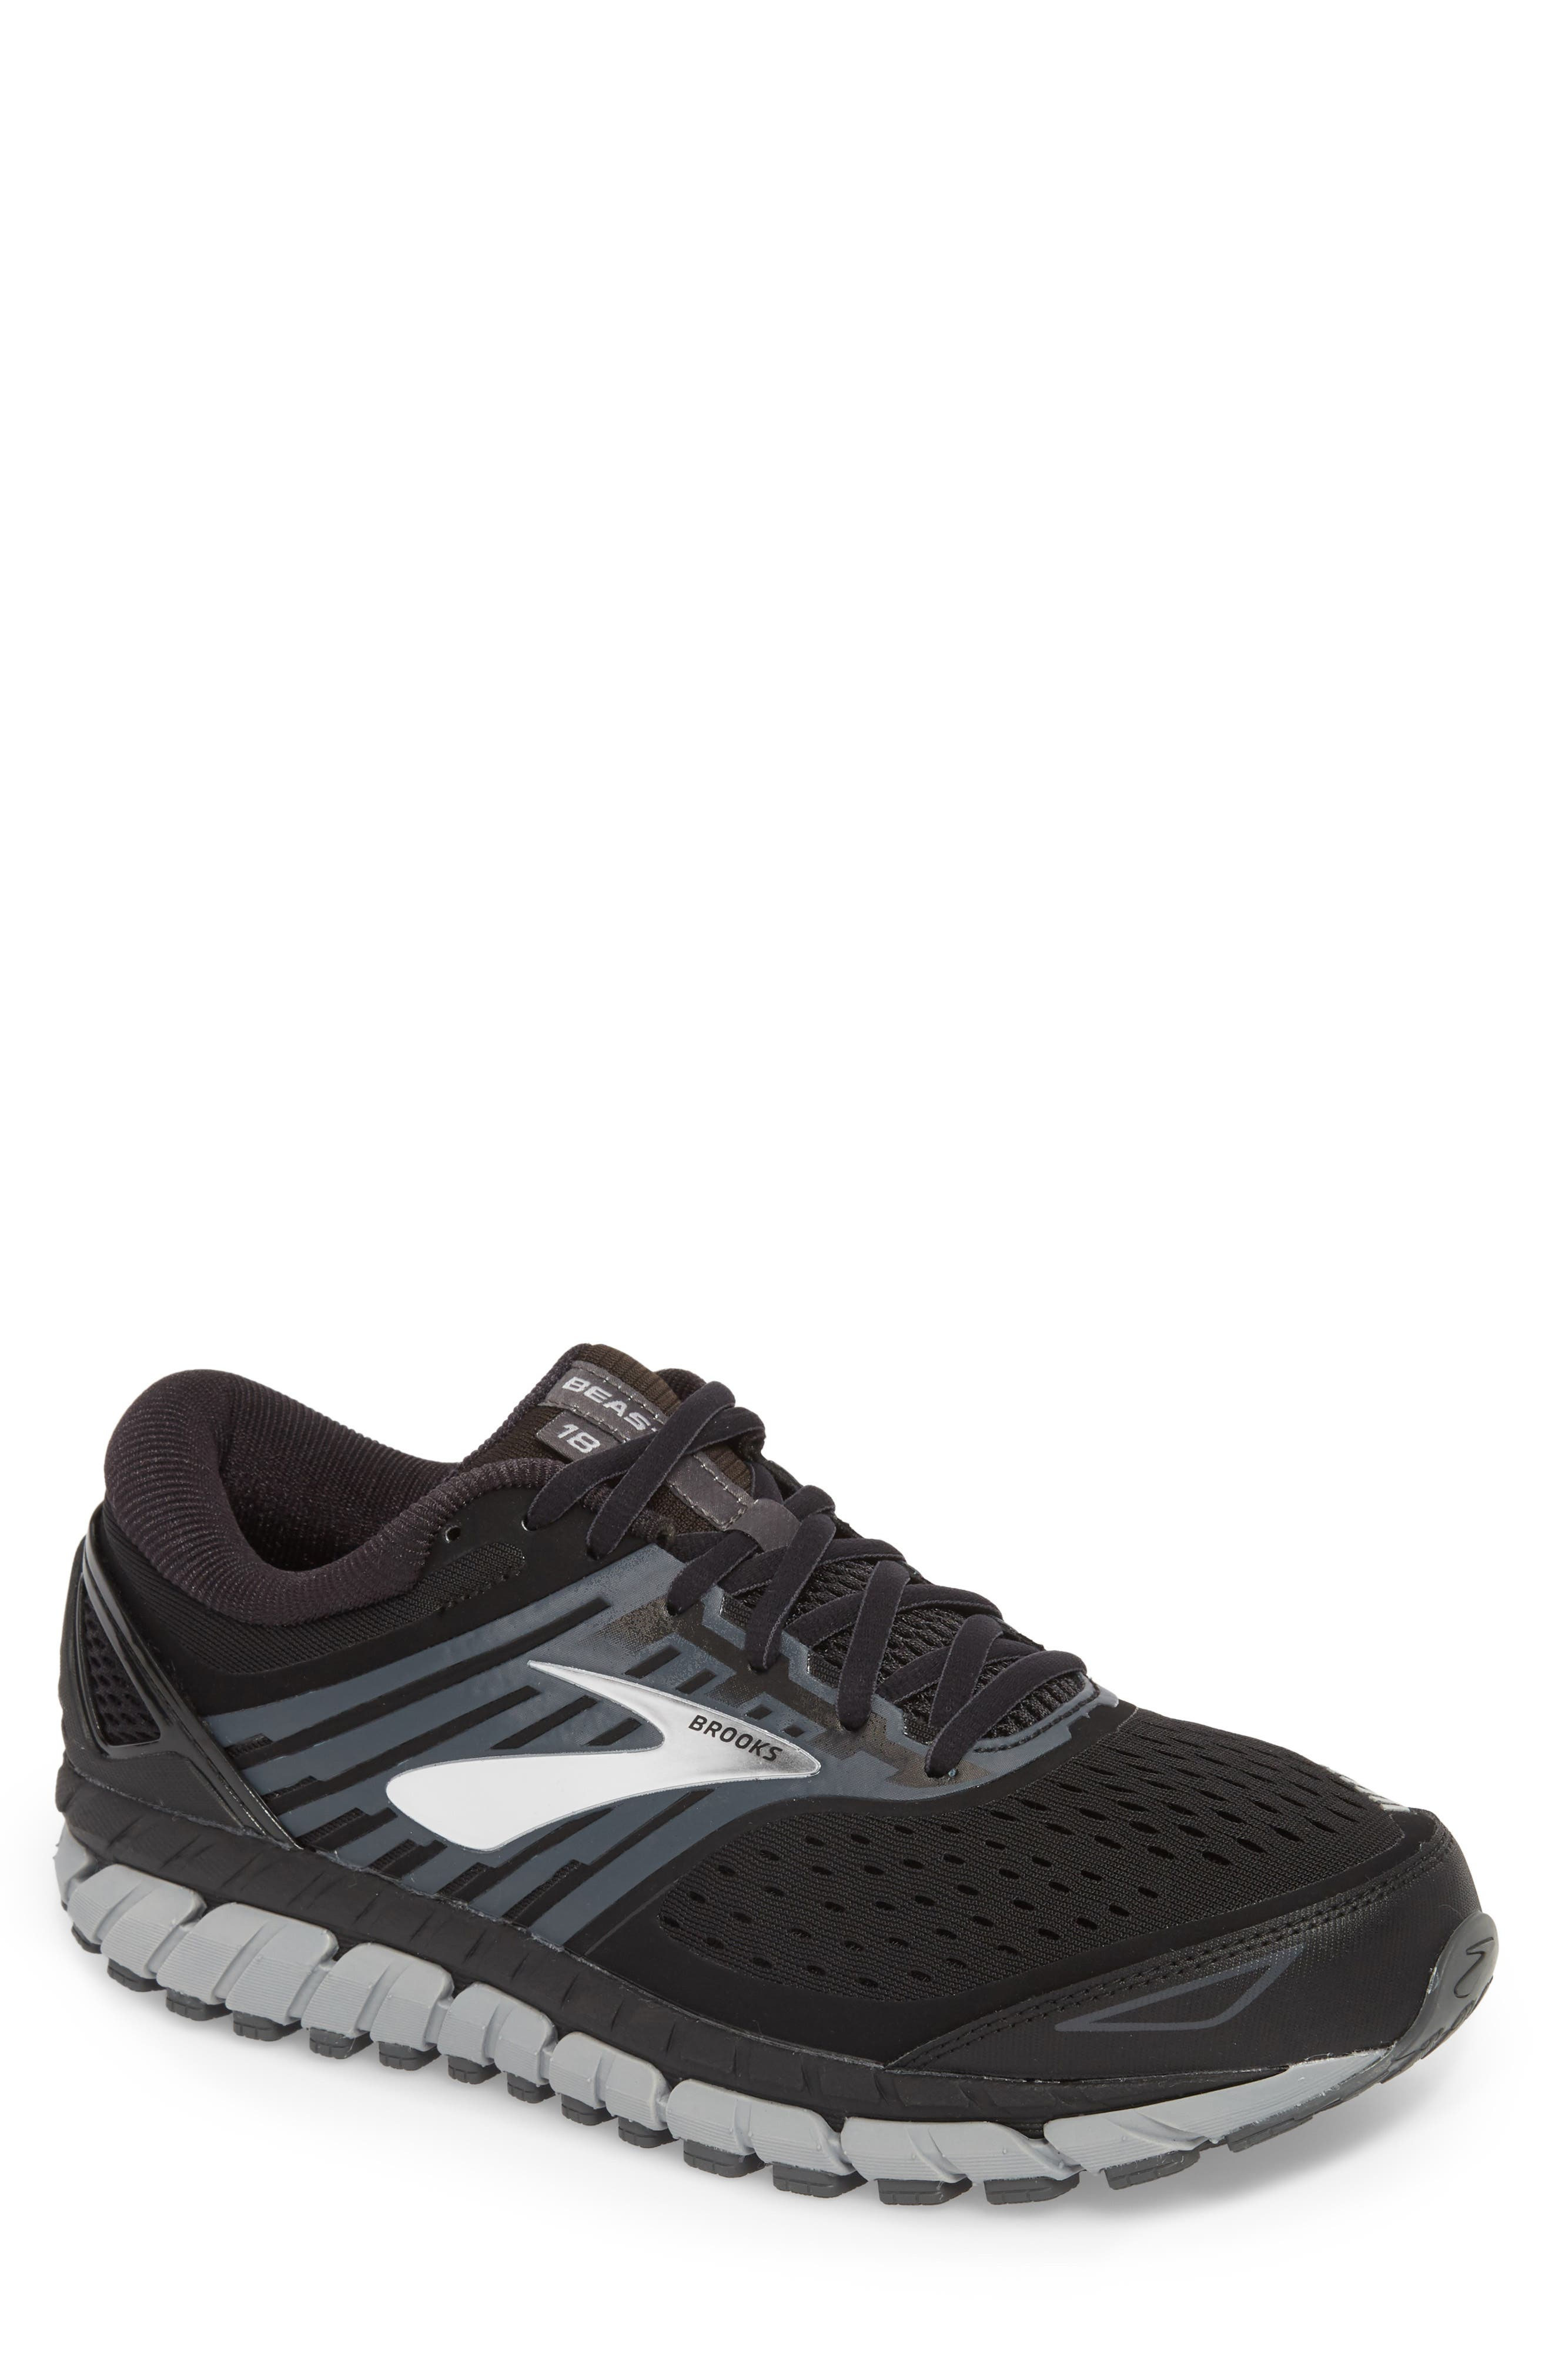 Beast '18 Running Shoe,                             Main thumbnail 1, color,                             Black/ Grey/ Silver